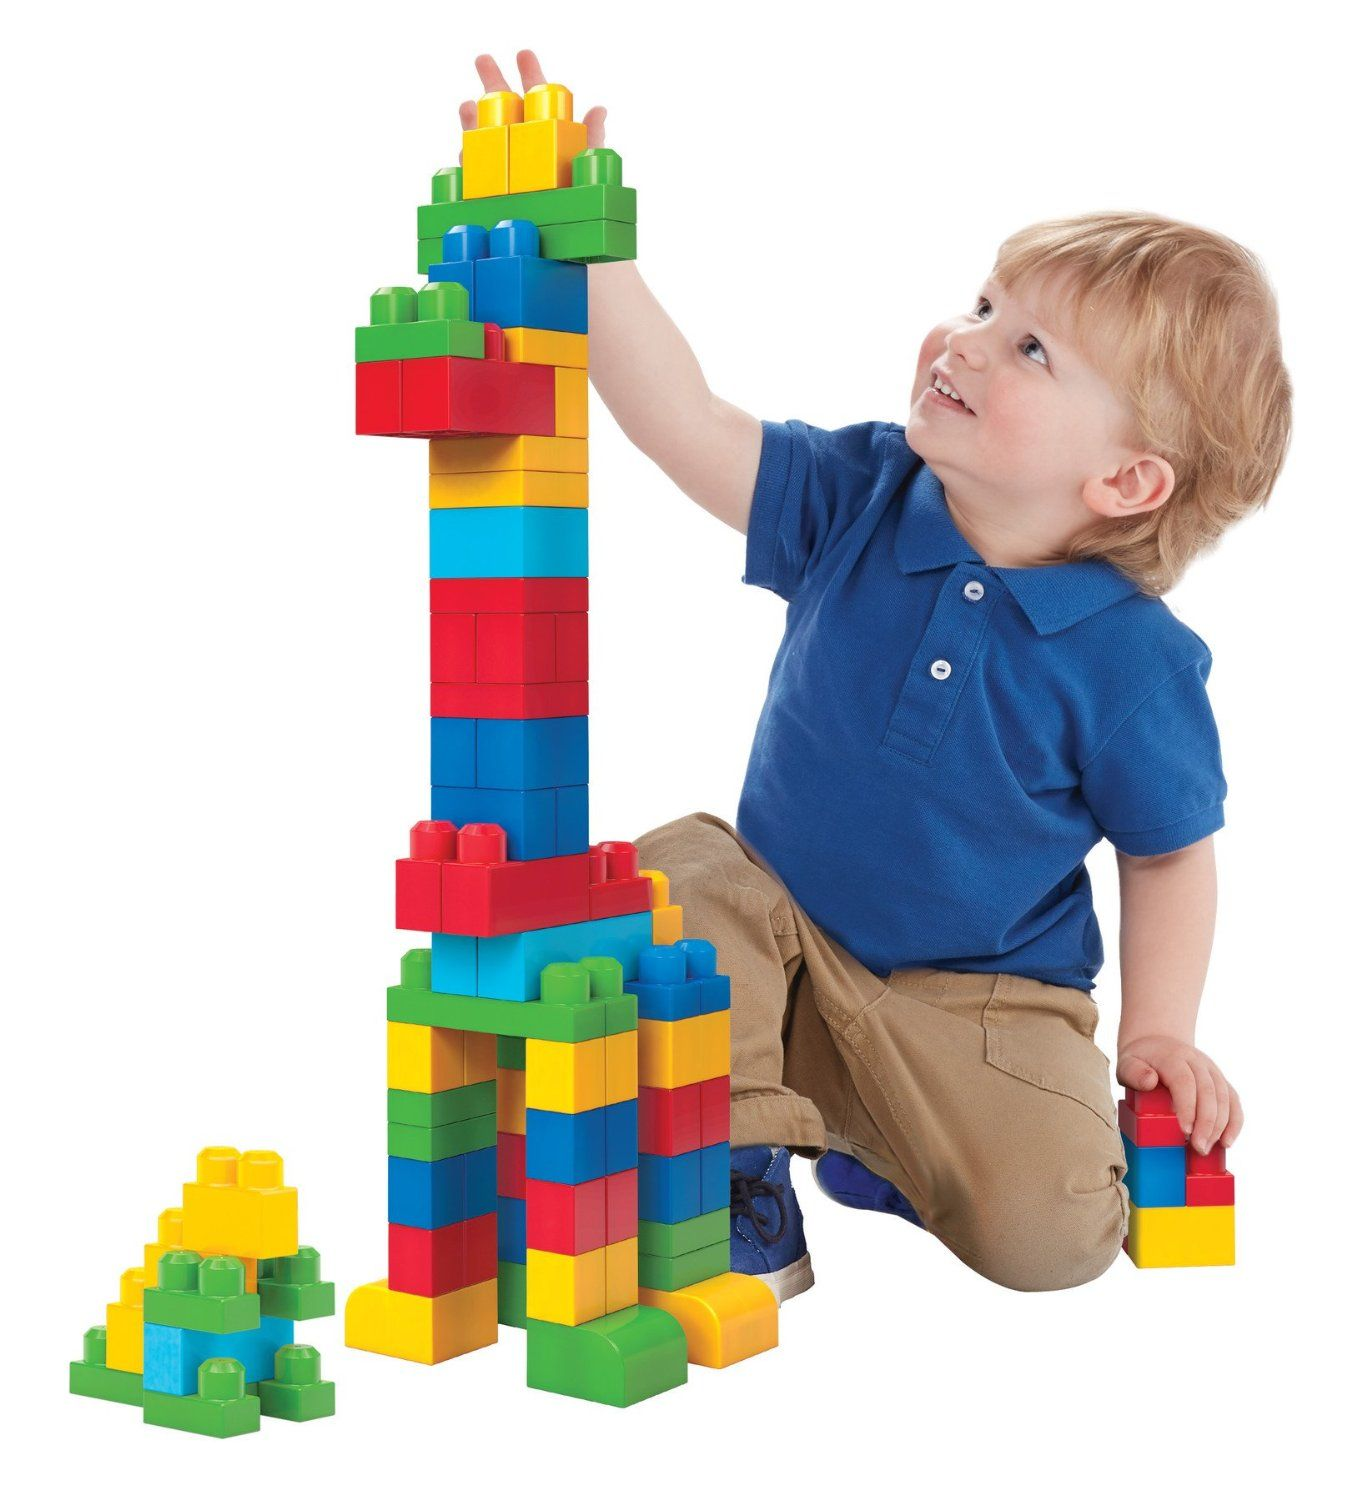 There Are A Few Pictures Of Children Playing With Blocks